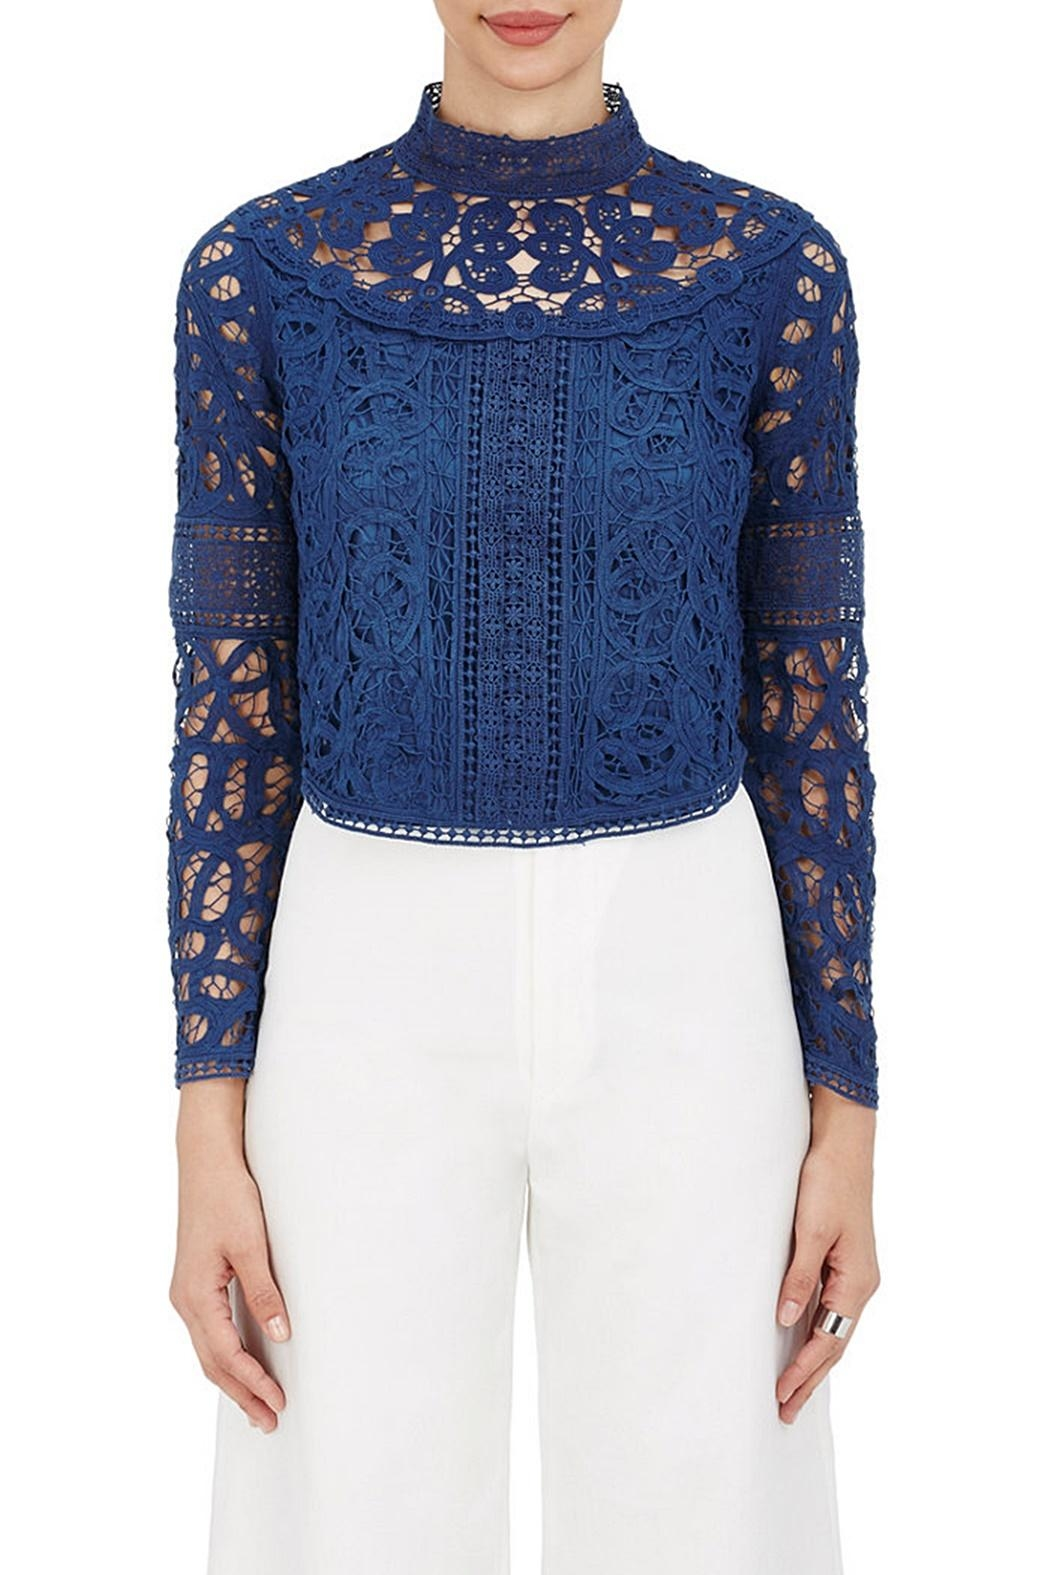 SEA Batternberg Lace Top - Front Cropped Image